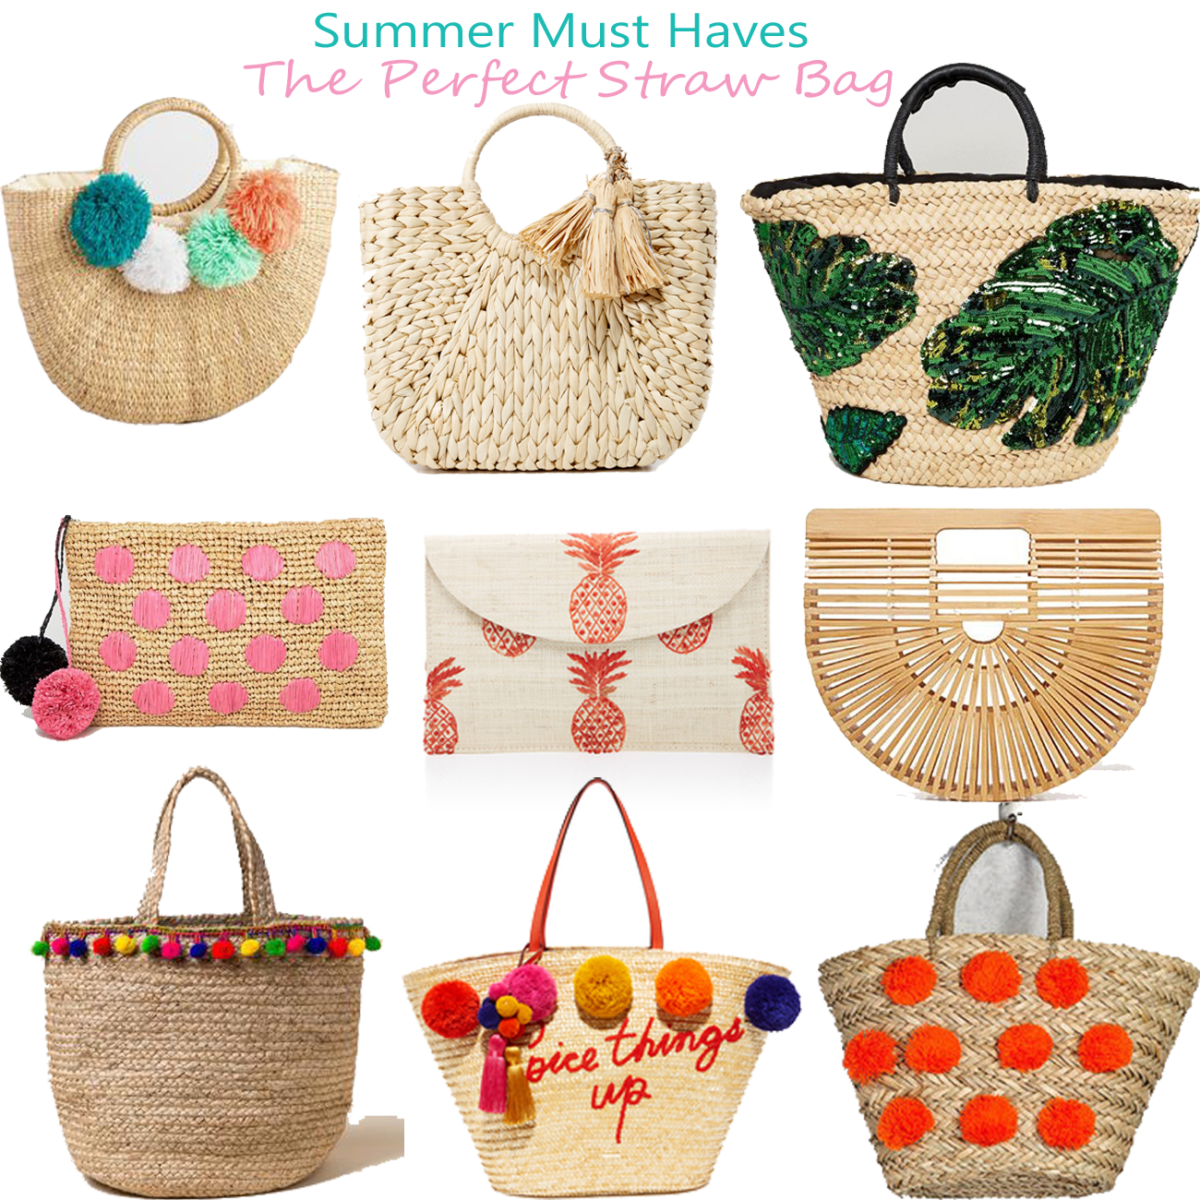 Summer Must Haves: The Perfect Straw Bag